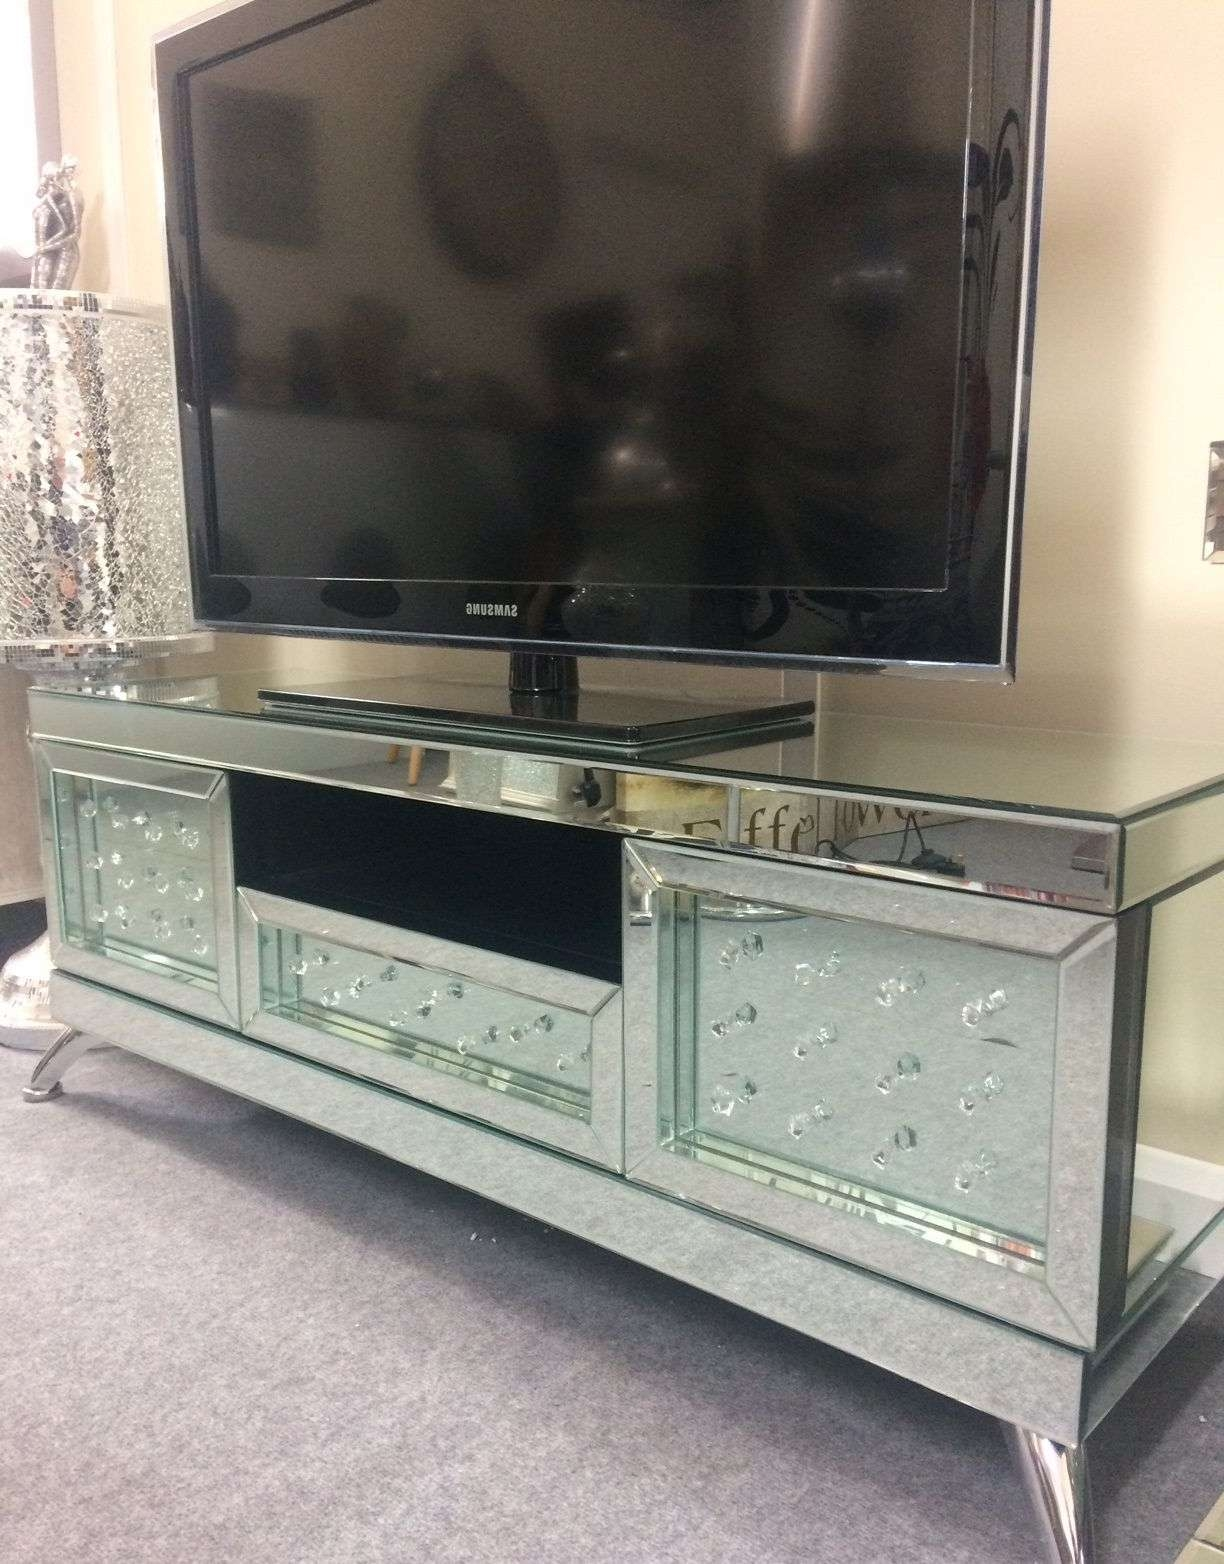 Inspirational Mirrored Tv Stands 65 About Remodel Home Design Regarding Mirrored Tv Cabinets Furniture (View 4 of 20)